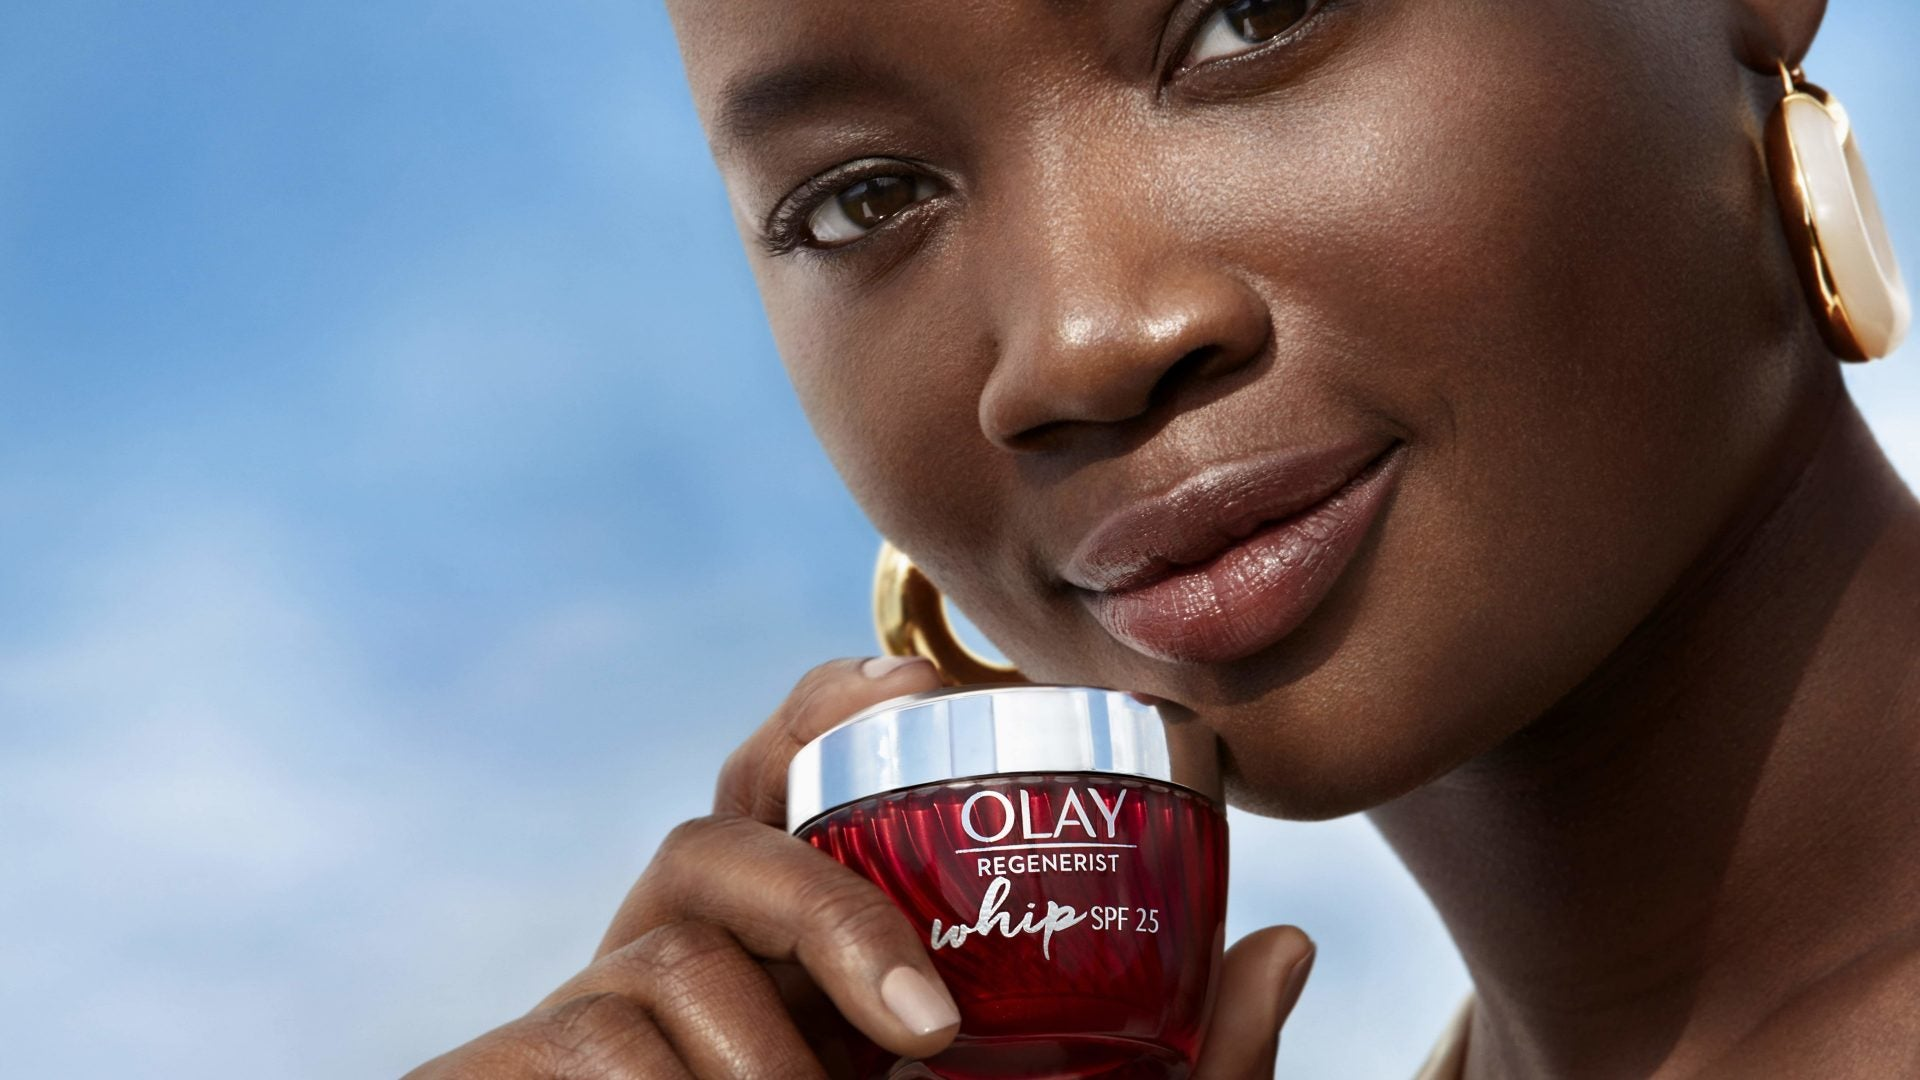 Mama CaxTeams Up With Olay To Open The Dialogue On SPF And Protecting Black Skin